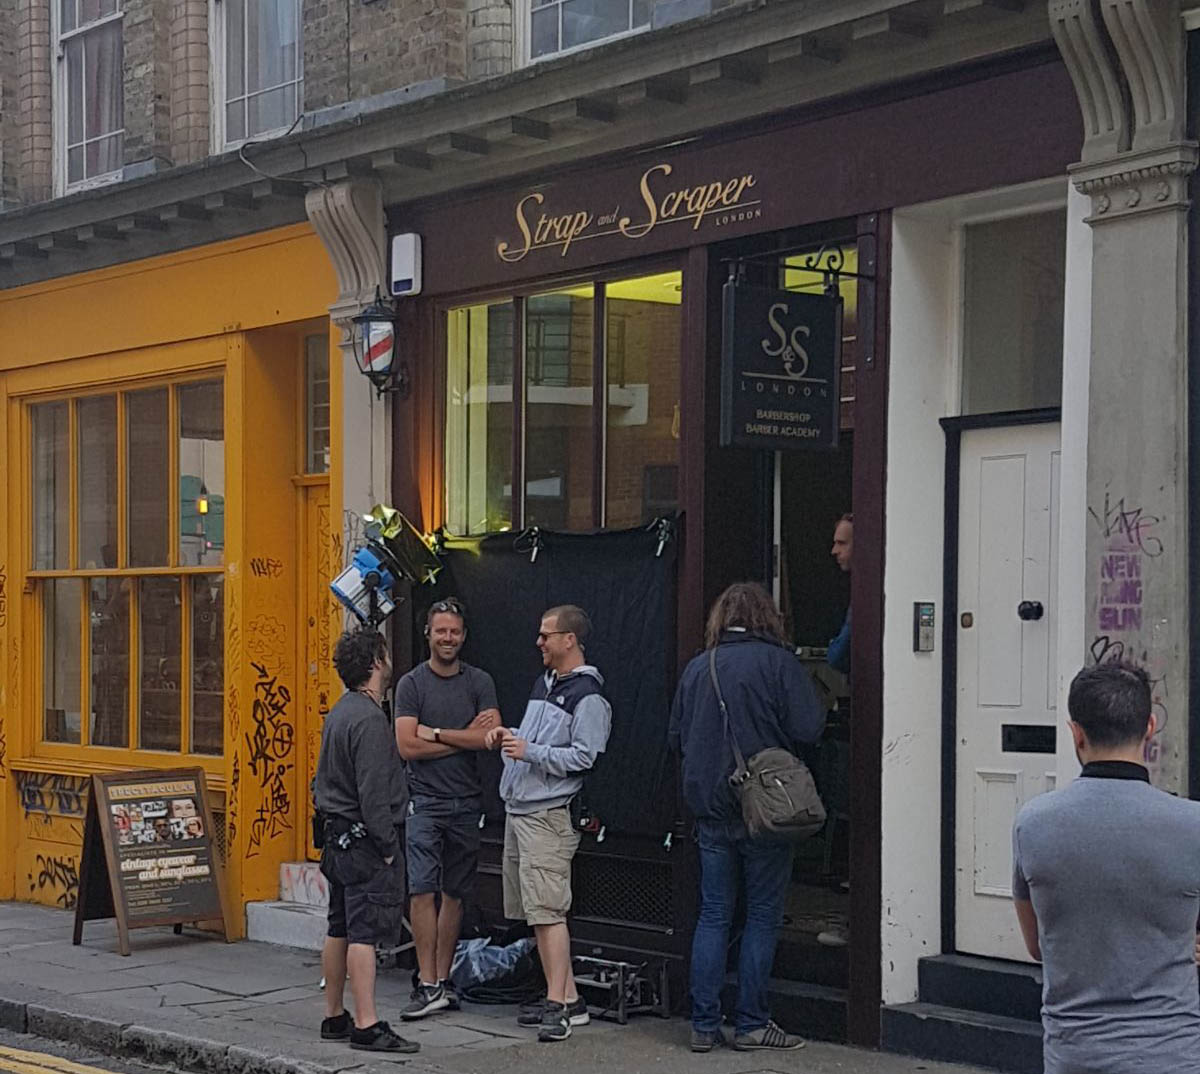 Apple Music filming at Strap and Scraper London Barbershop, Shoreditch